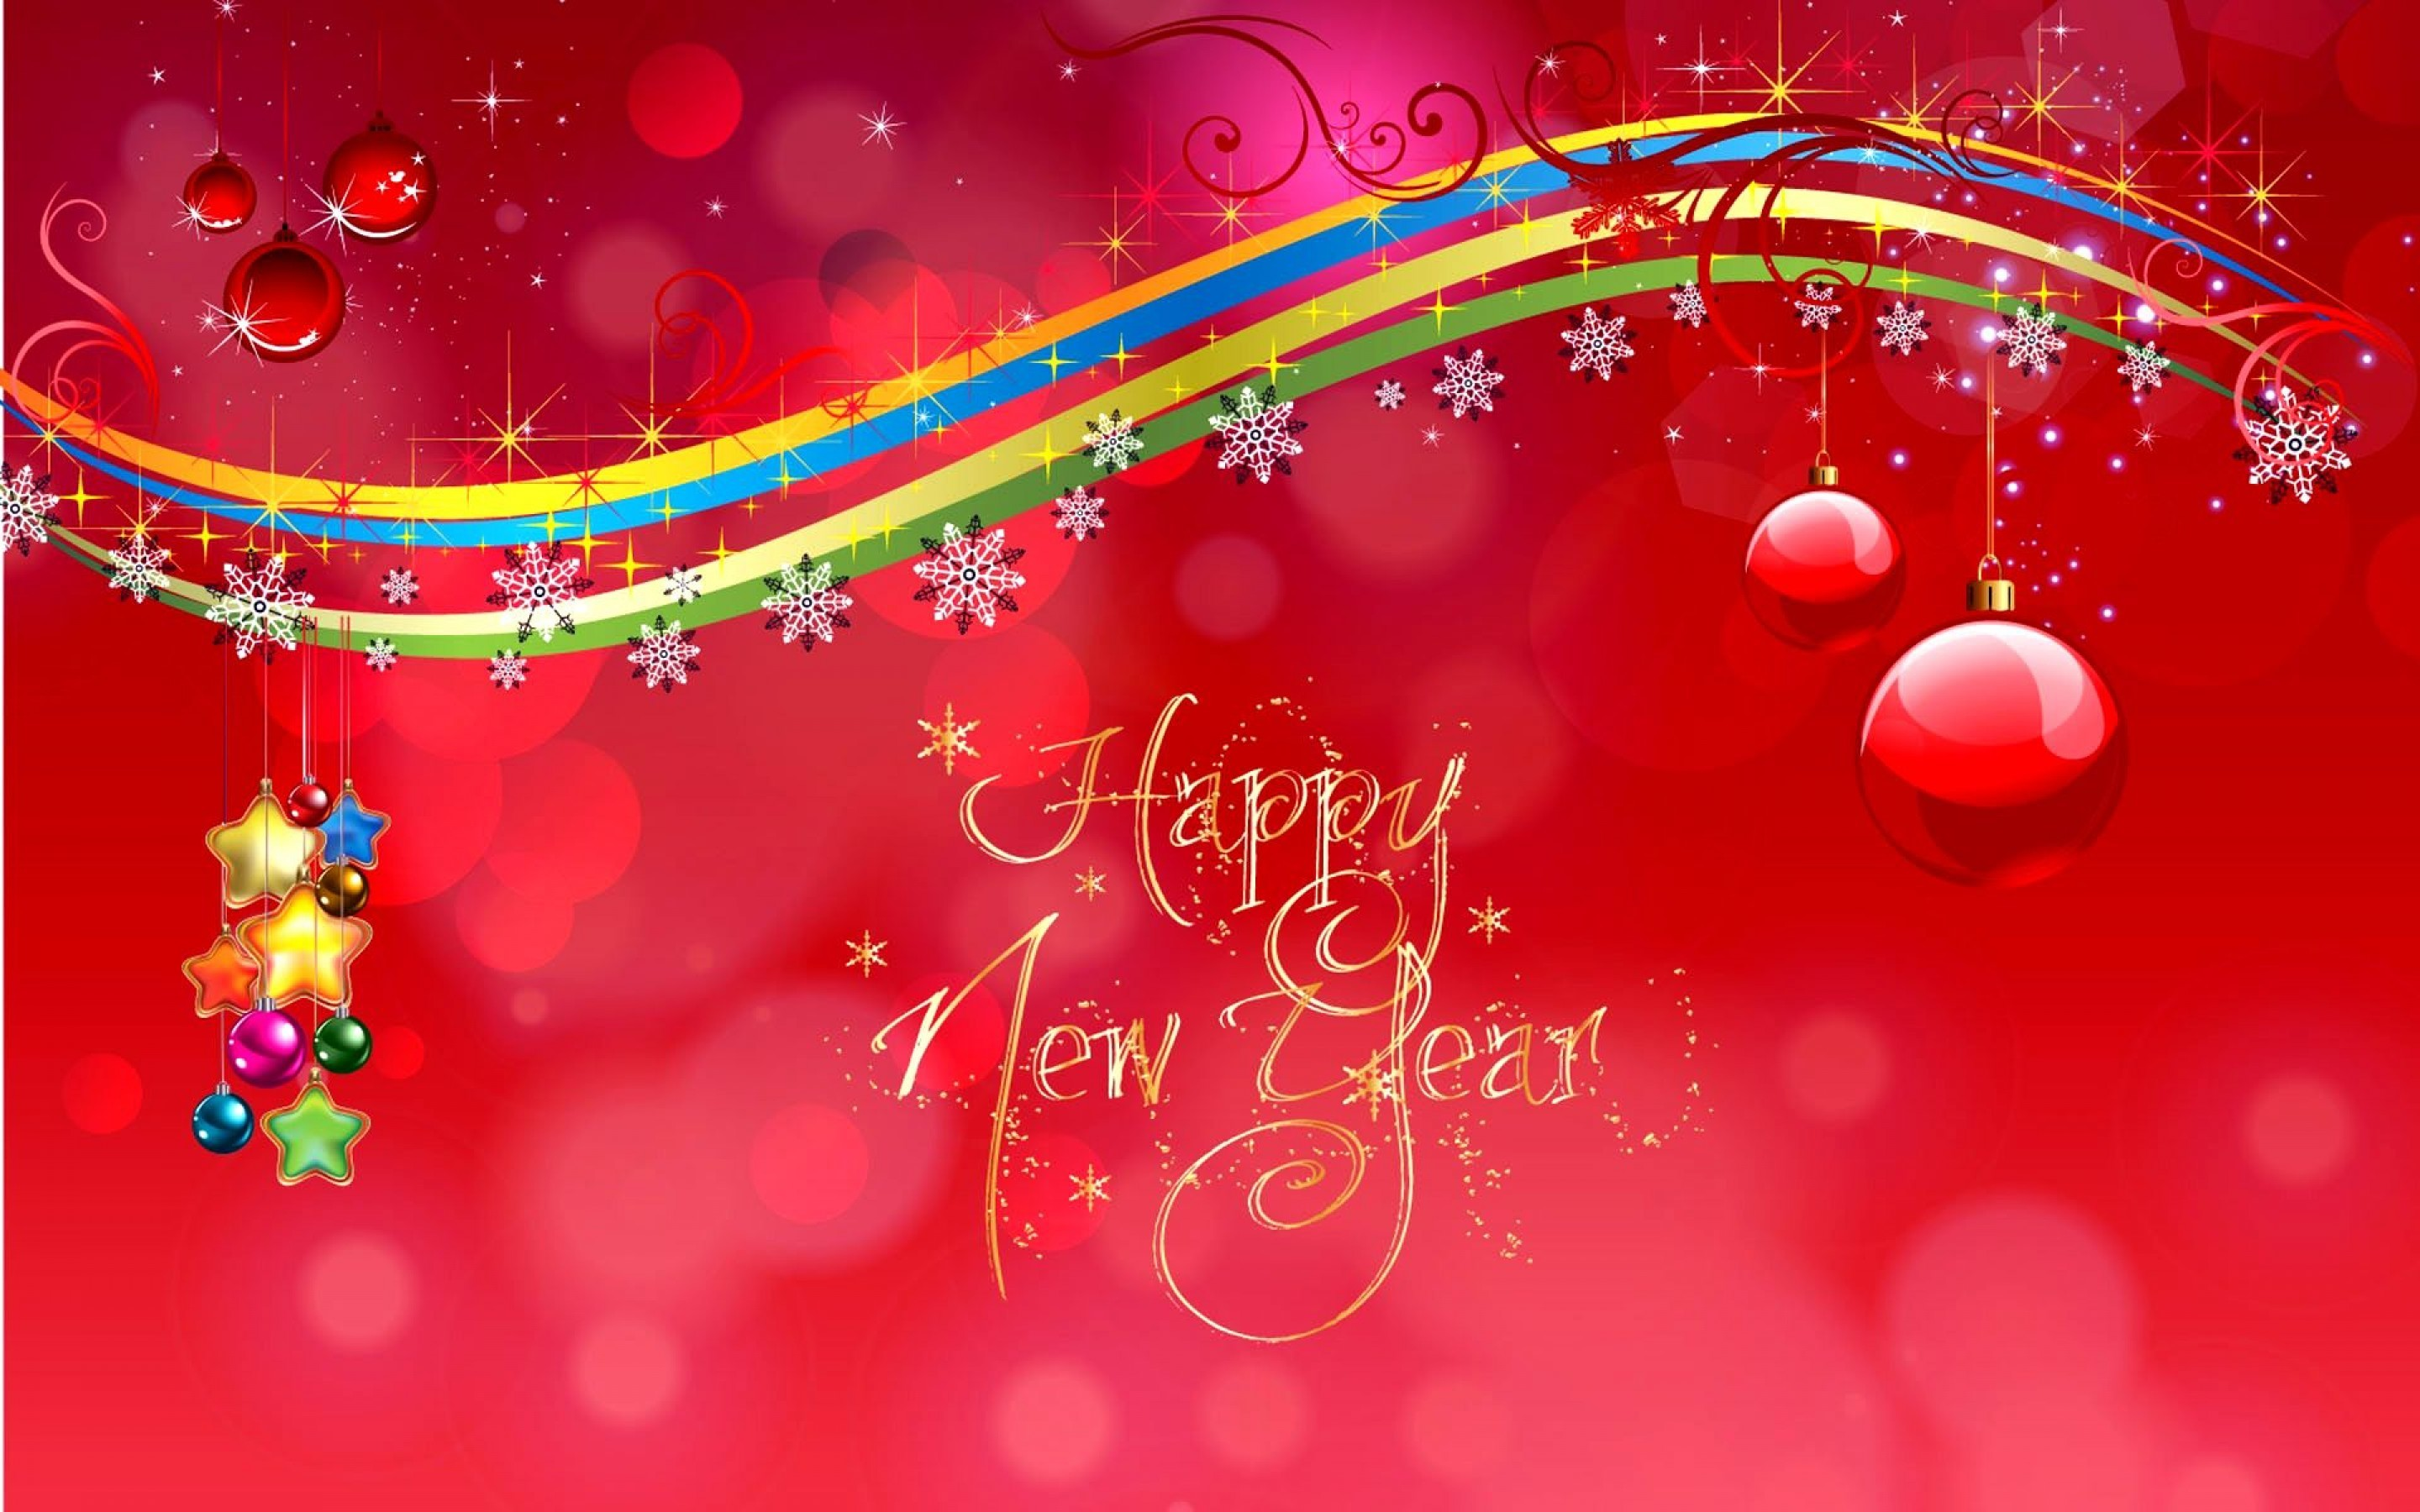 2880x1800 happy new year hd background wallpaper 11214 baltana download happy